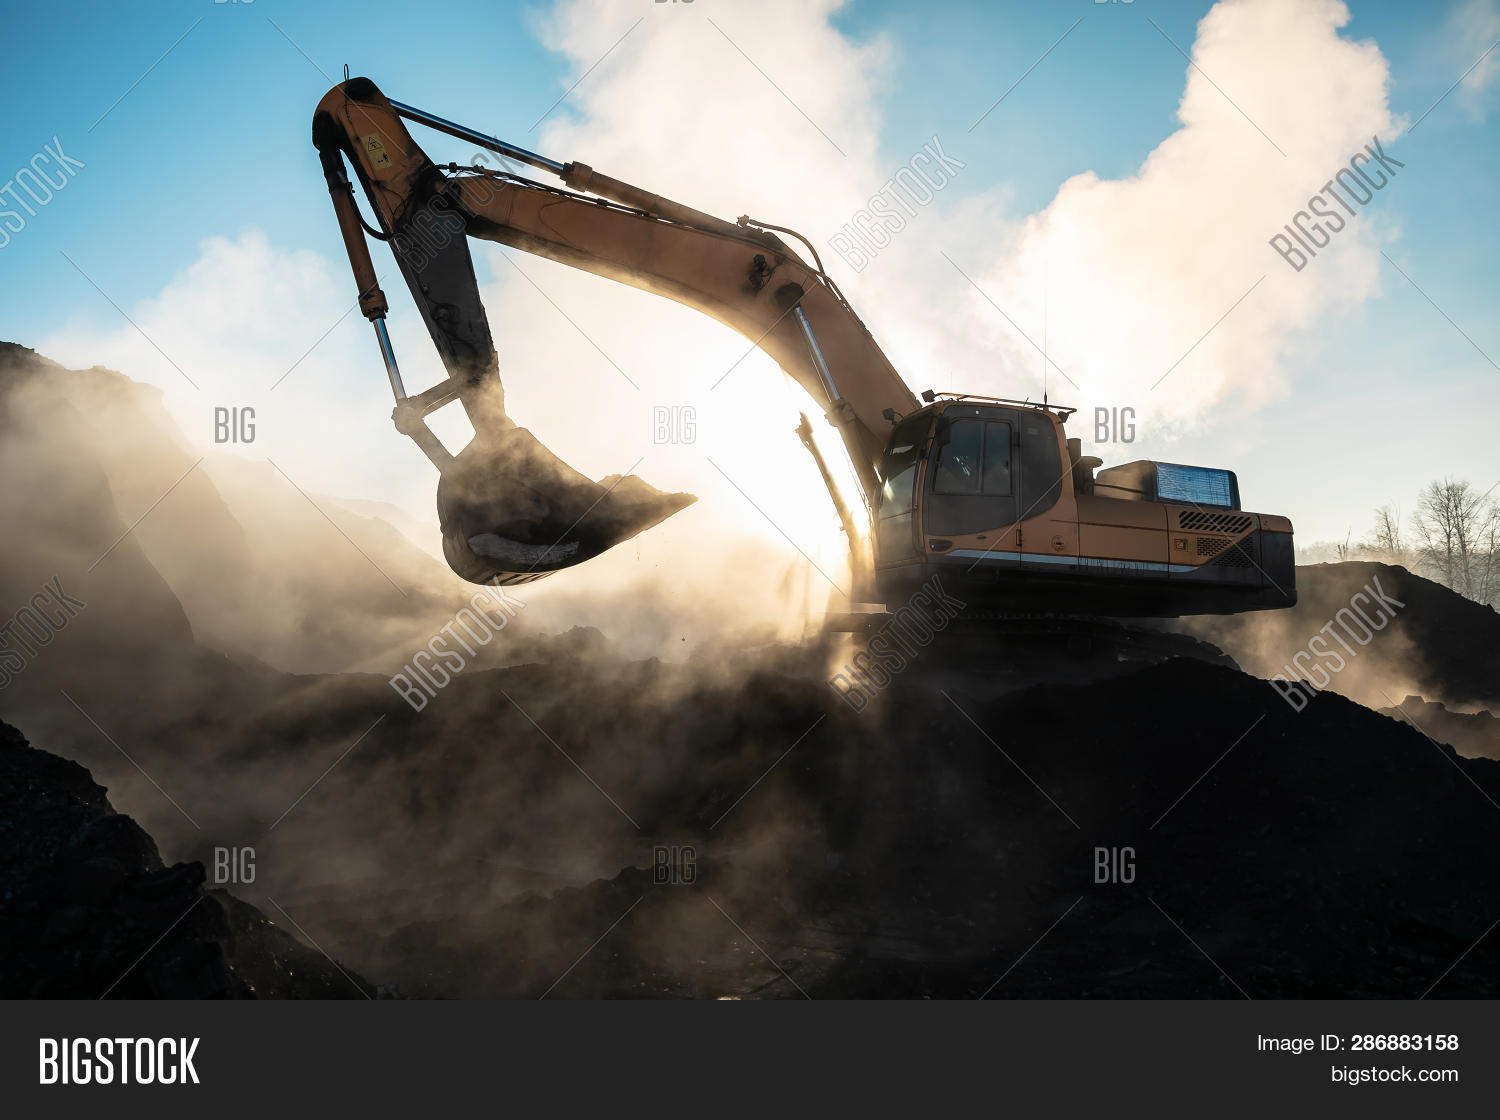 action,activity,big,blue,bucket,build,building,bulldozer,construction,contractor,dig,digger,dirt,earth,earthmover,equipment,excavation,excavator,ground,heavy,hydraulic,industrial,industry,iron,job,land,large,loader,machine,machinery,mining,mover,outdoors,power,quarry,road,sand,scoop,shovel,site,sky,soil,technology,track,tractor,transport,vehicle,wheel,work,yellow